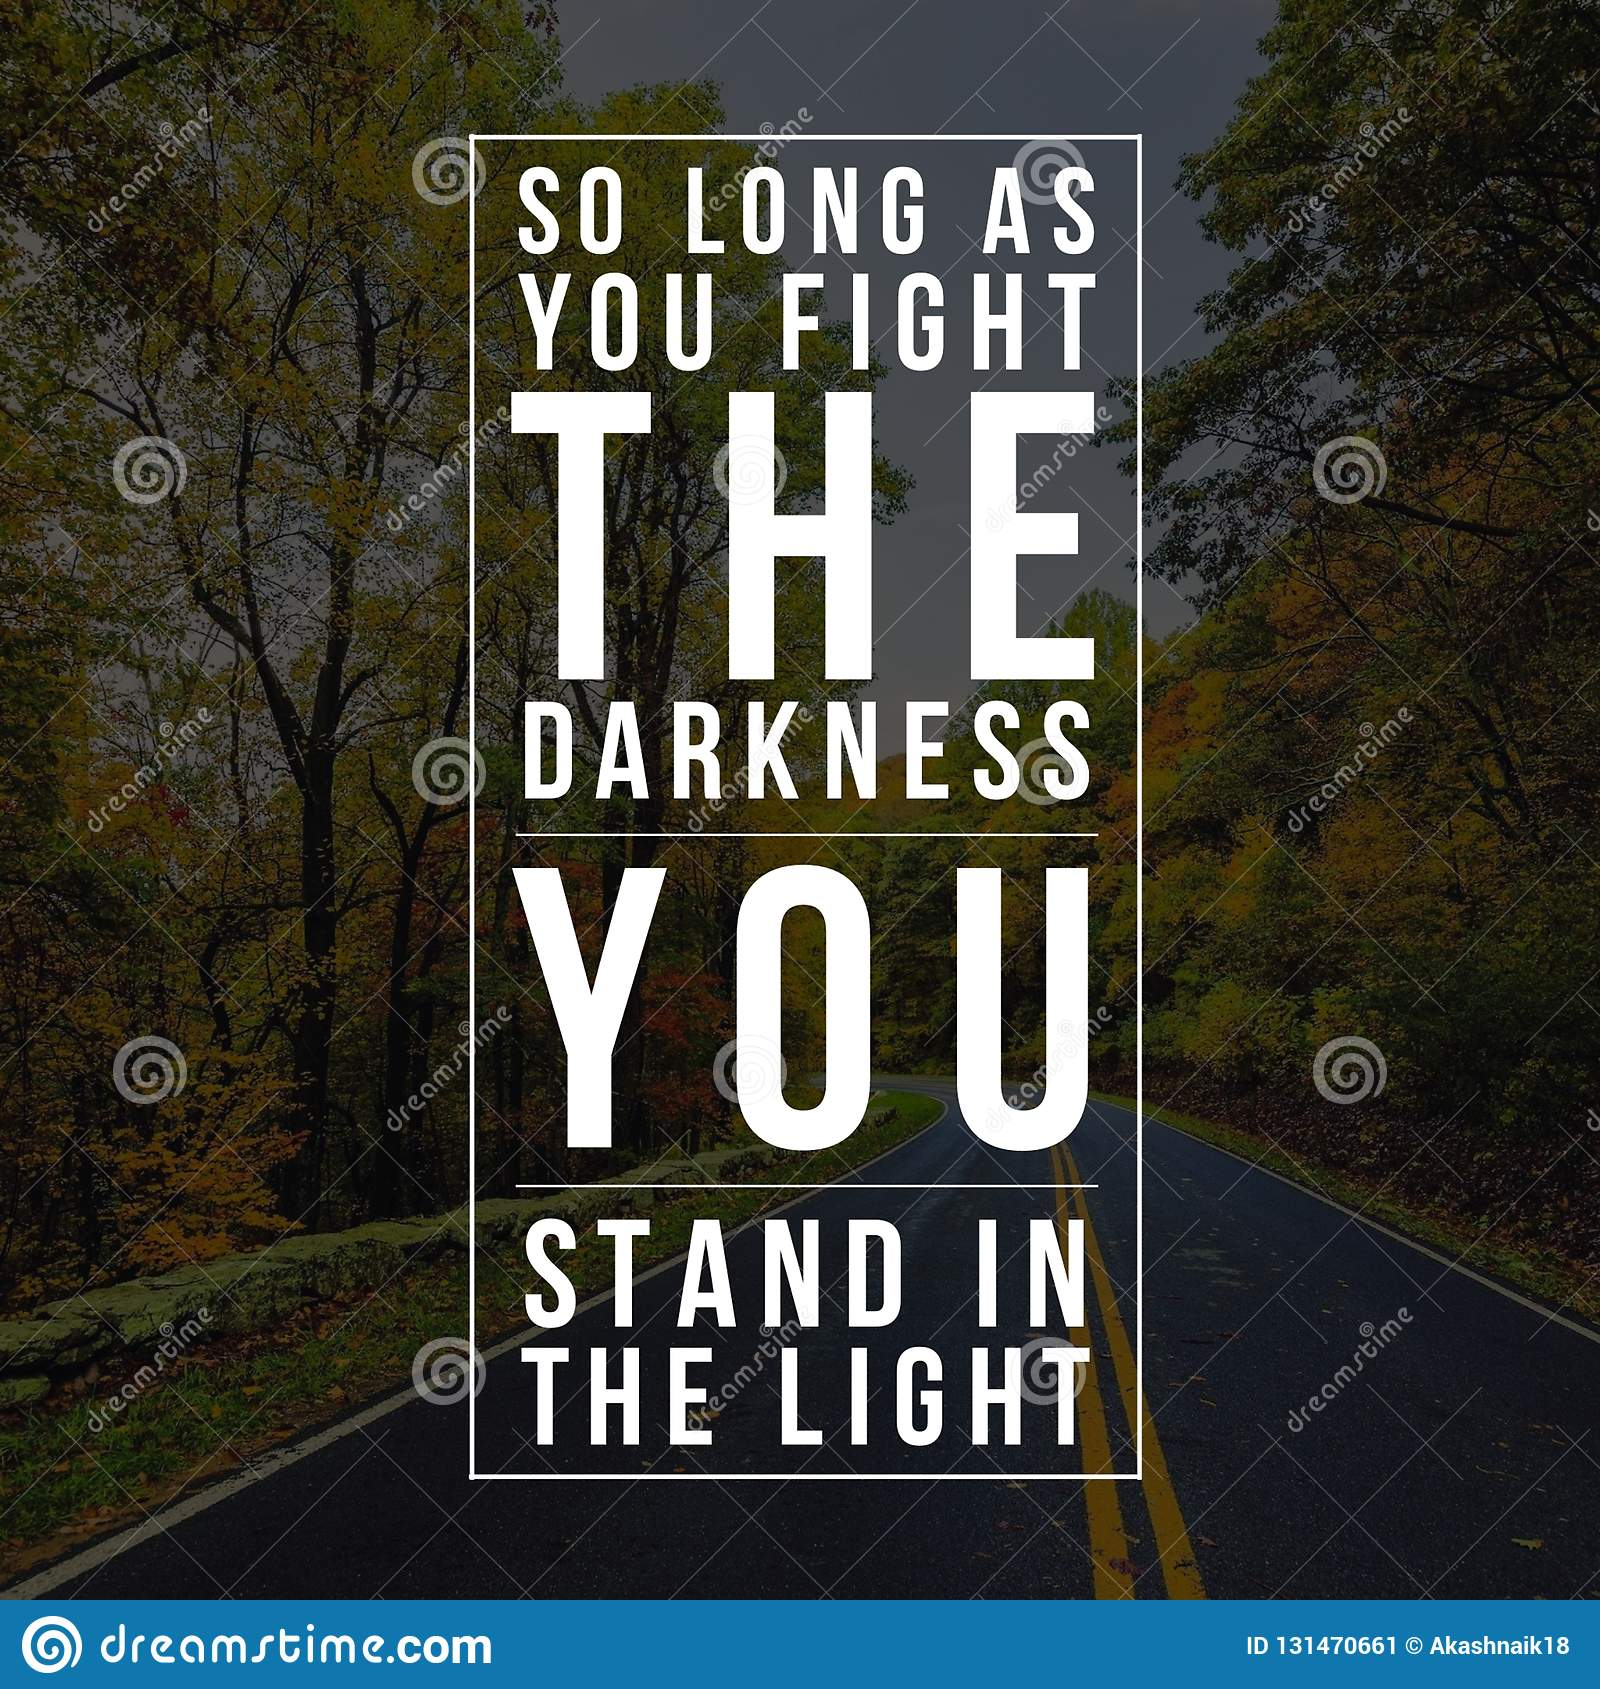 Inspirational Quotes So Long As You Fight The Darkness You Stand In